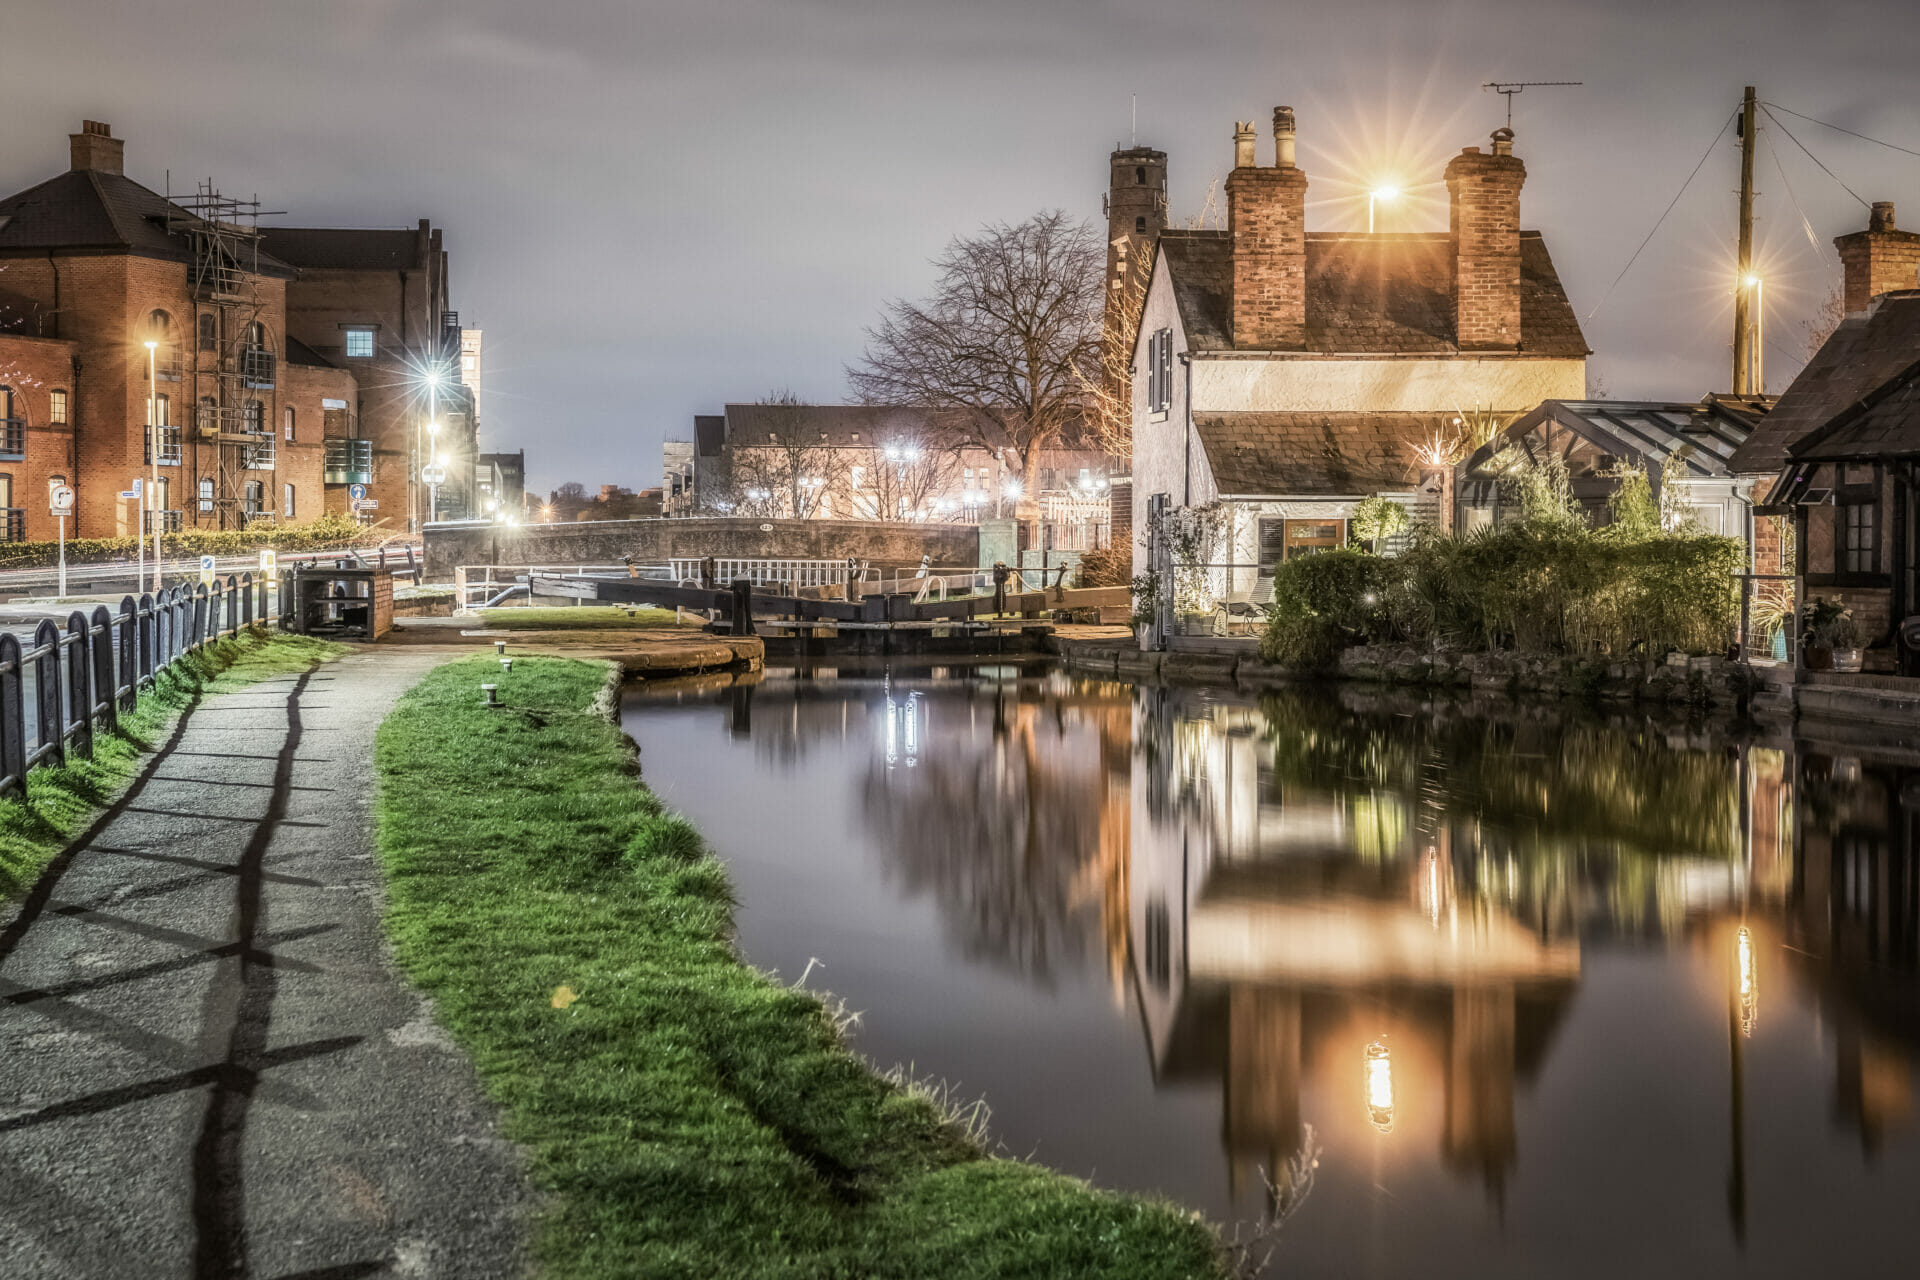 Photo taken in lowlight along the Shropshire Union Canal in Chester.